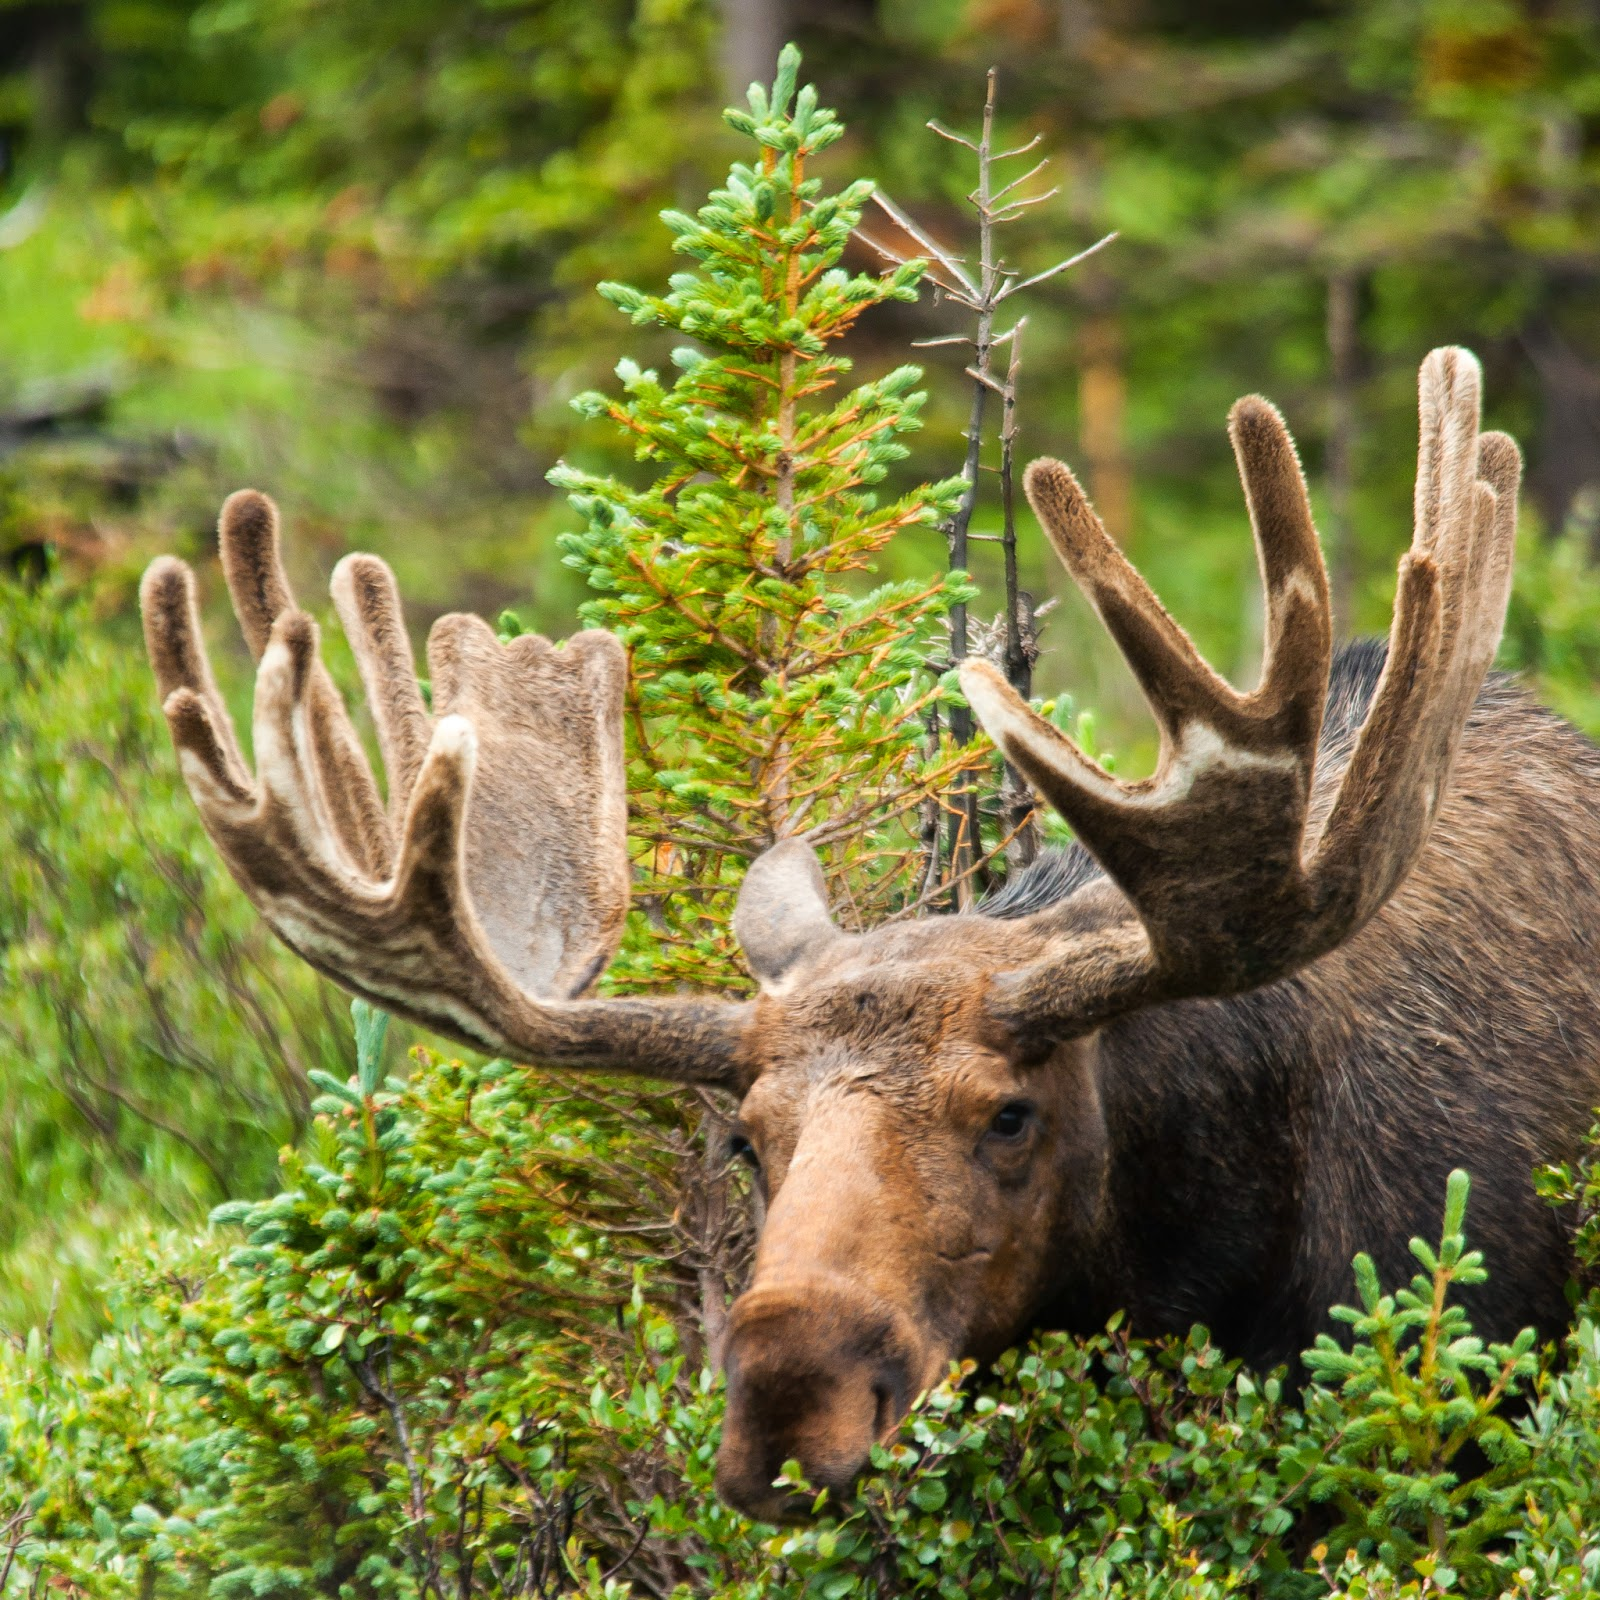 Bull Moose, Brainard Lake